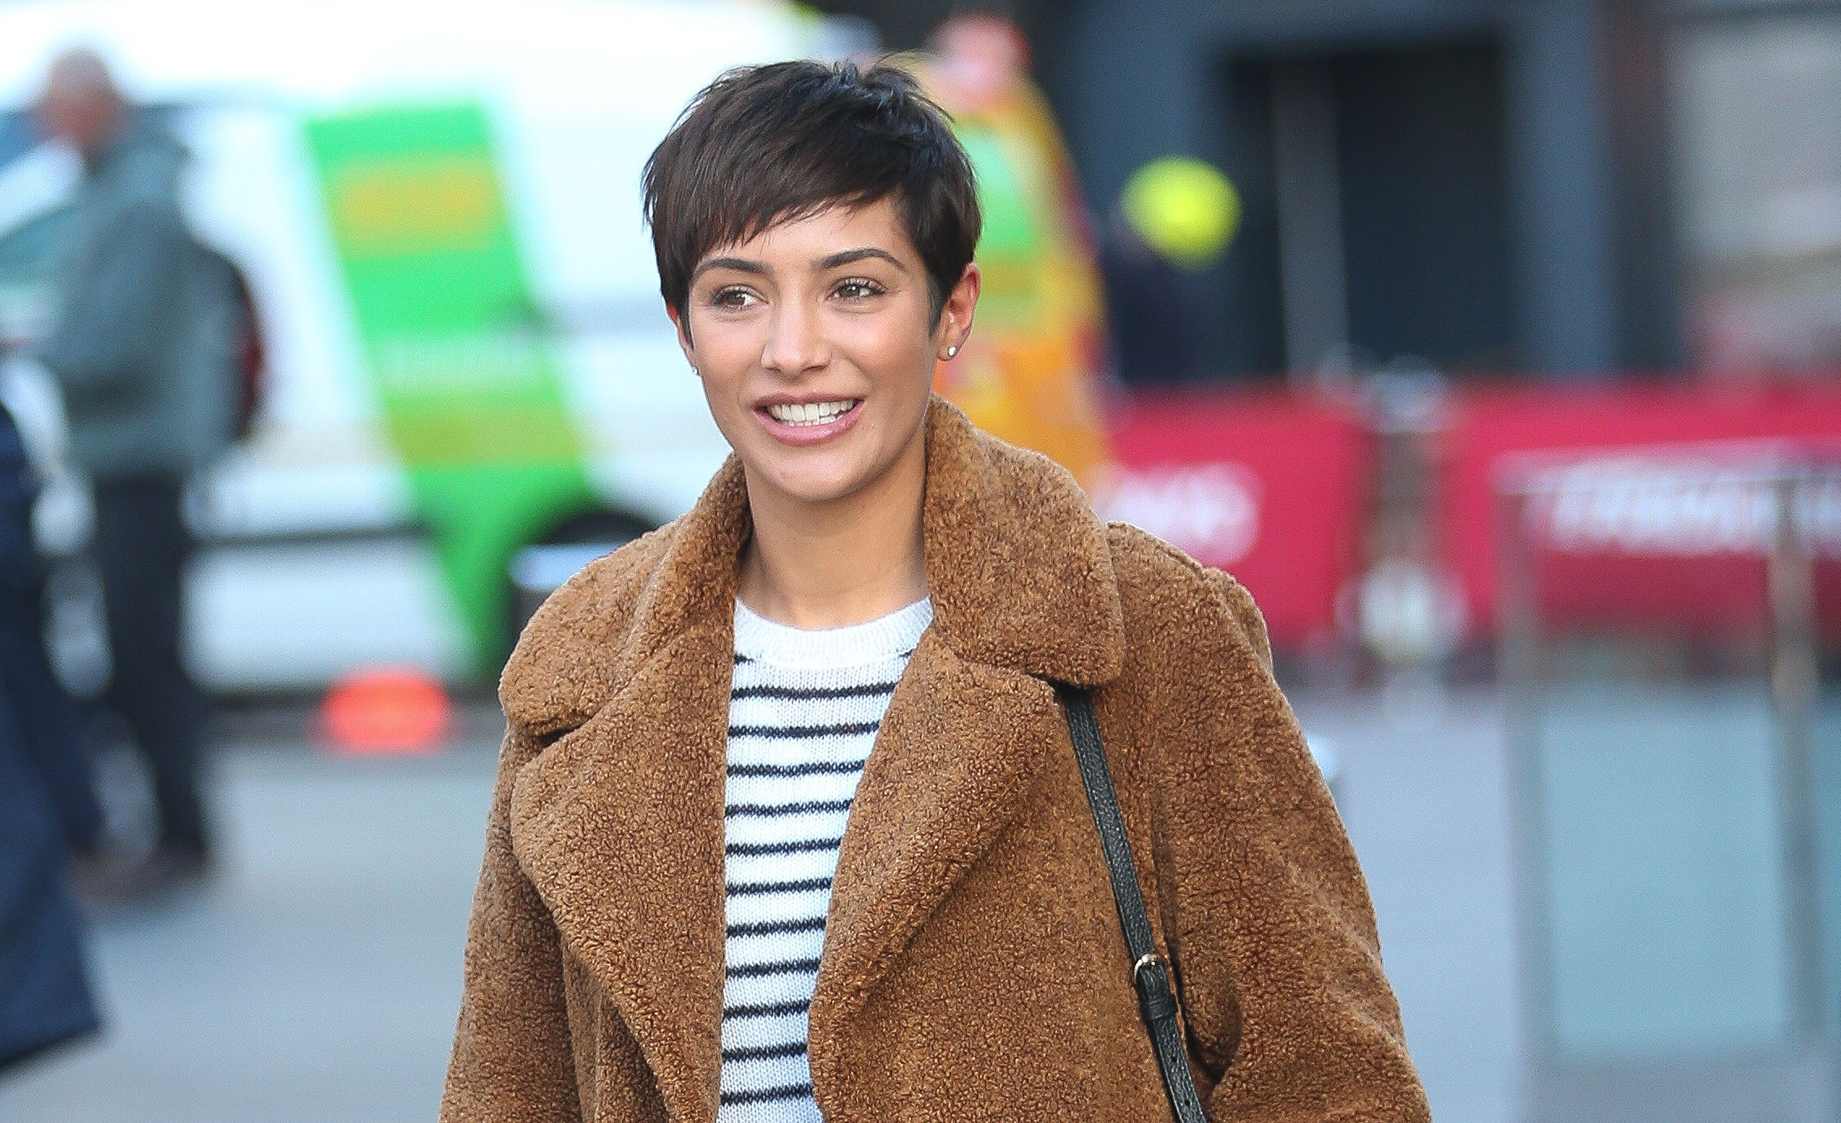 Celebrity Frankie Bridge nudes (53 foto and video), Ass, Cleavage, Feet, underwear 2015